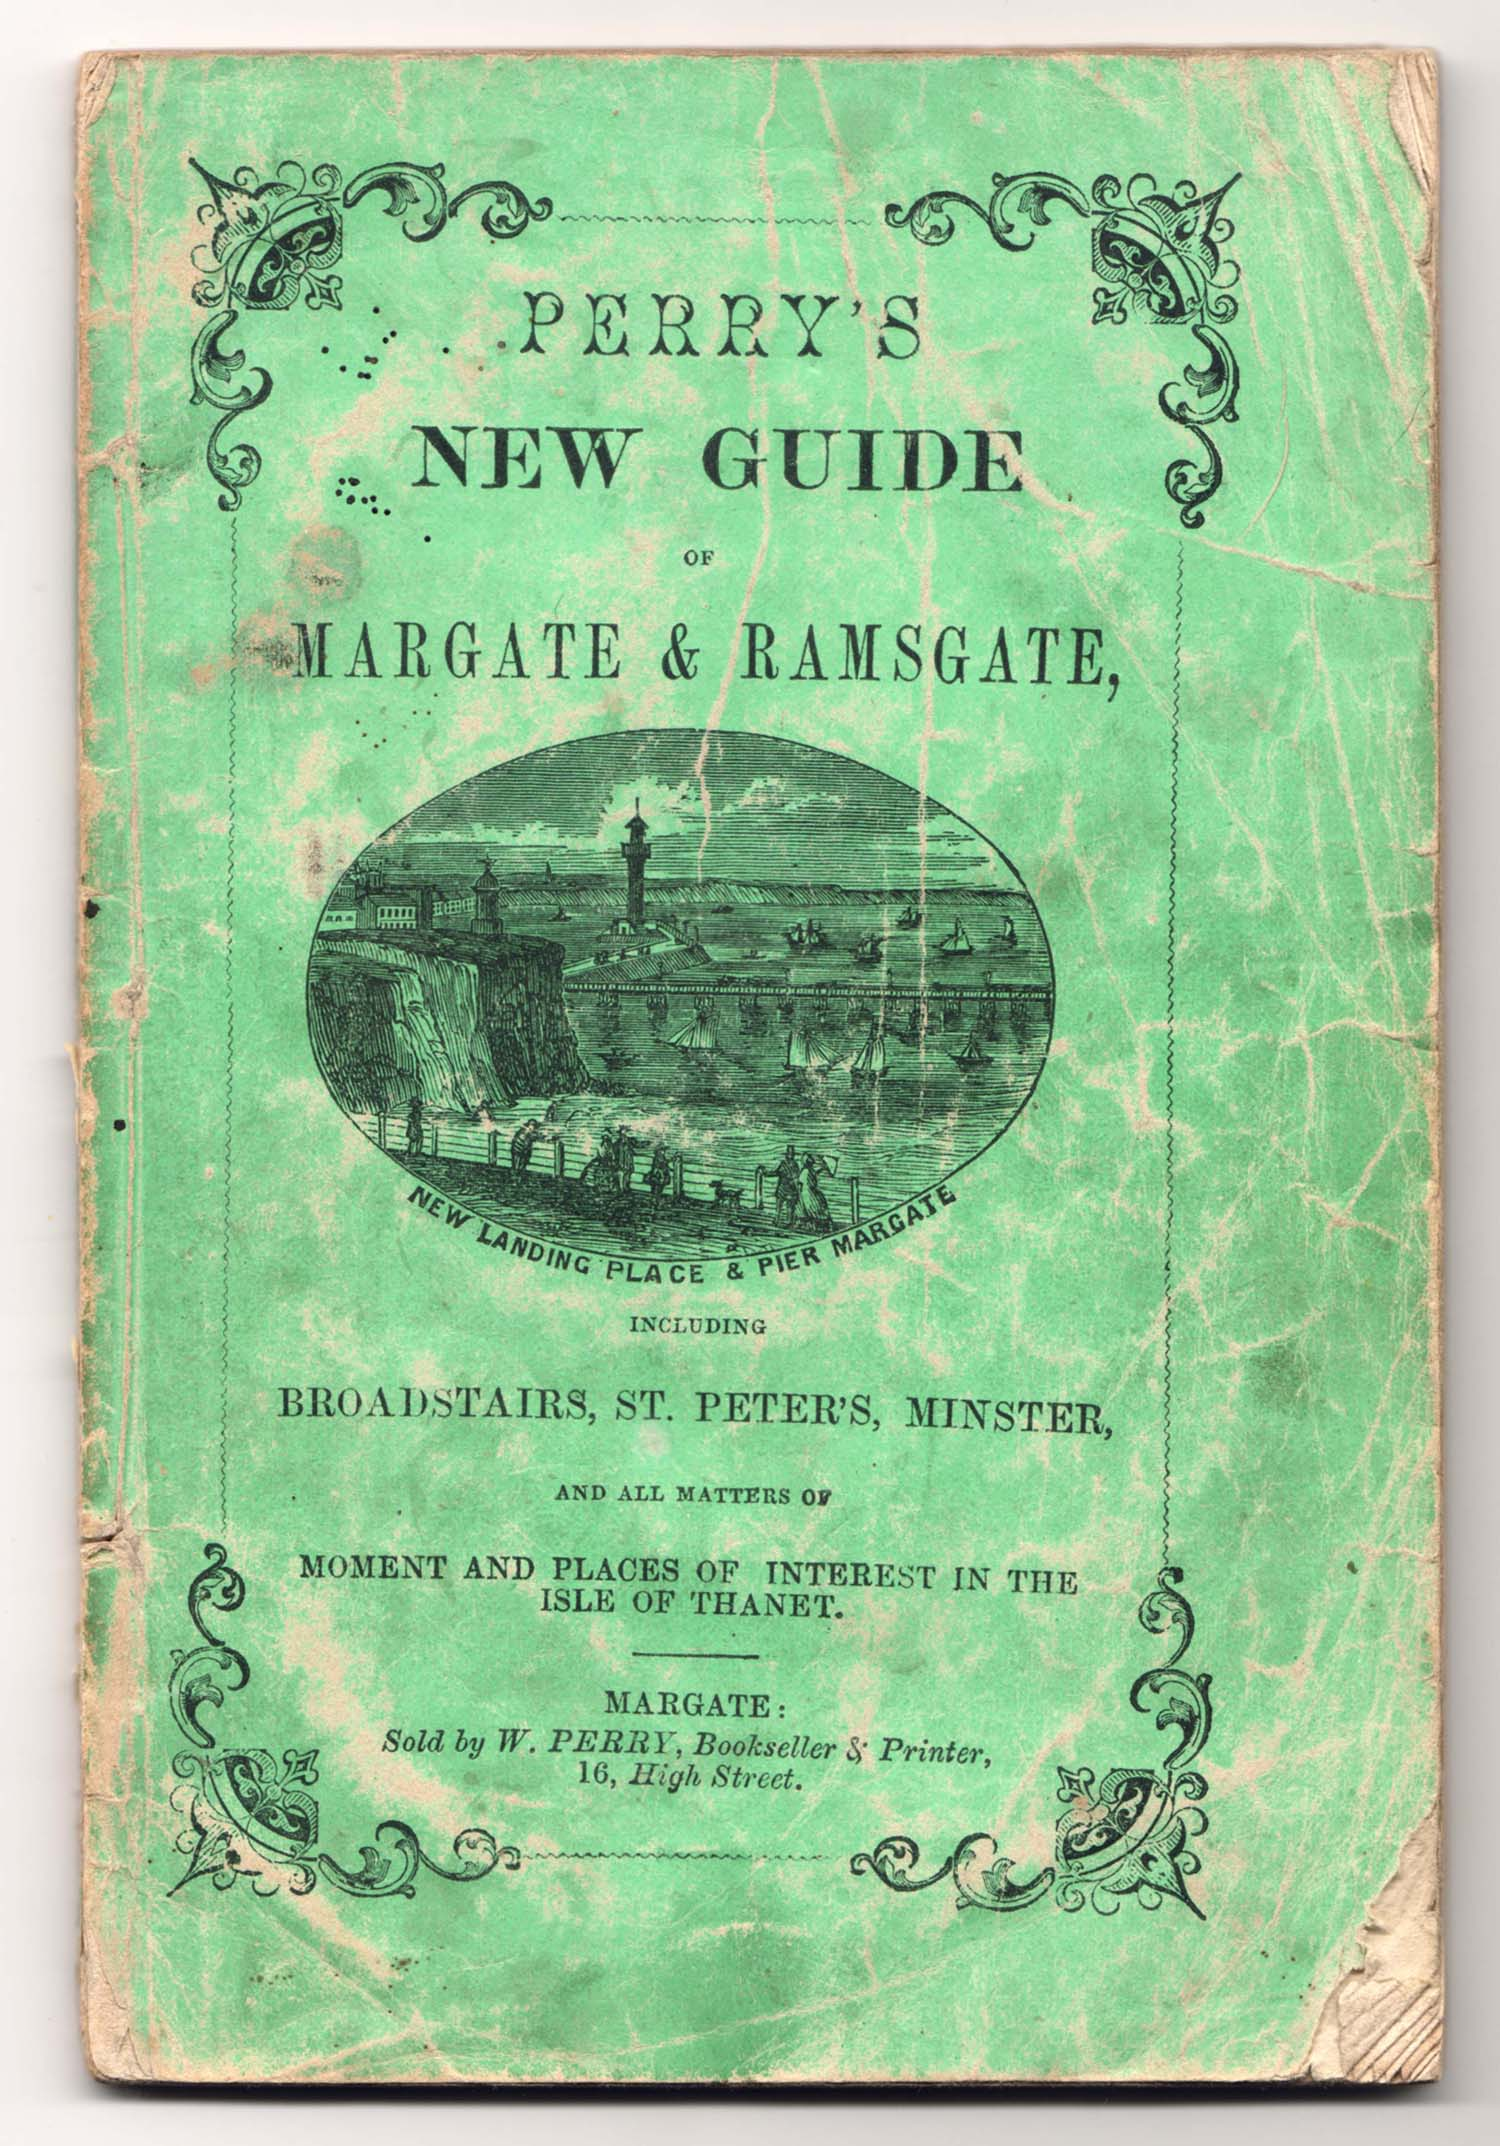 Prints of margate in guide and other books margate history for Perry cr309 s manuale